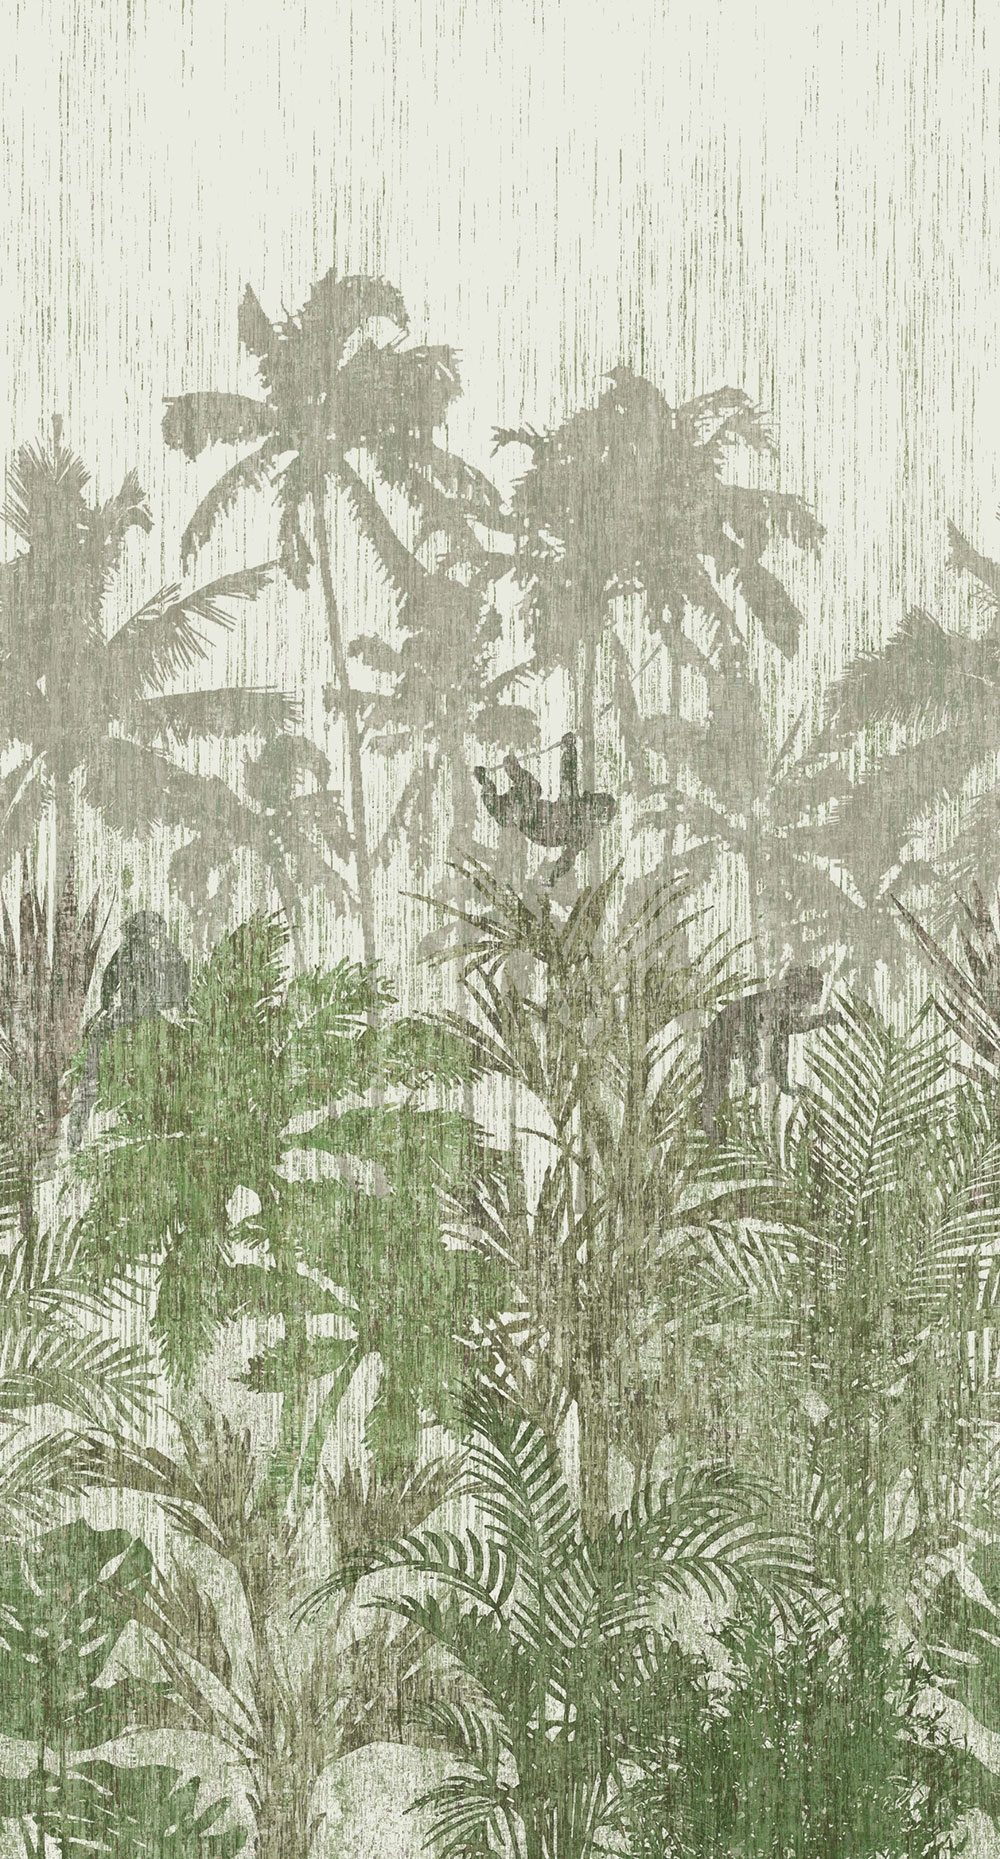 Vliesová obrazová tapeta 200349, Jungle 150 x 280 cm, Panthera, BN Walls